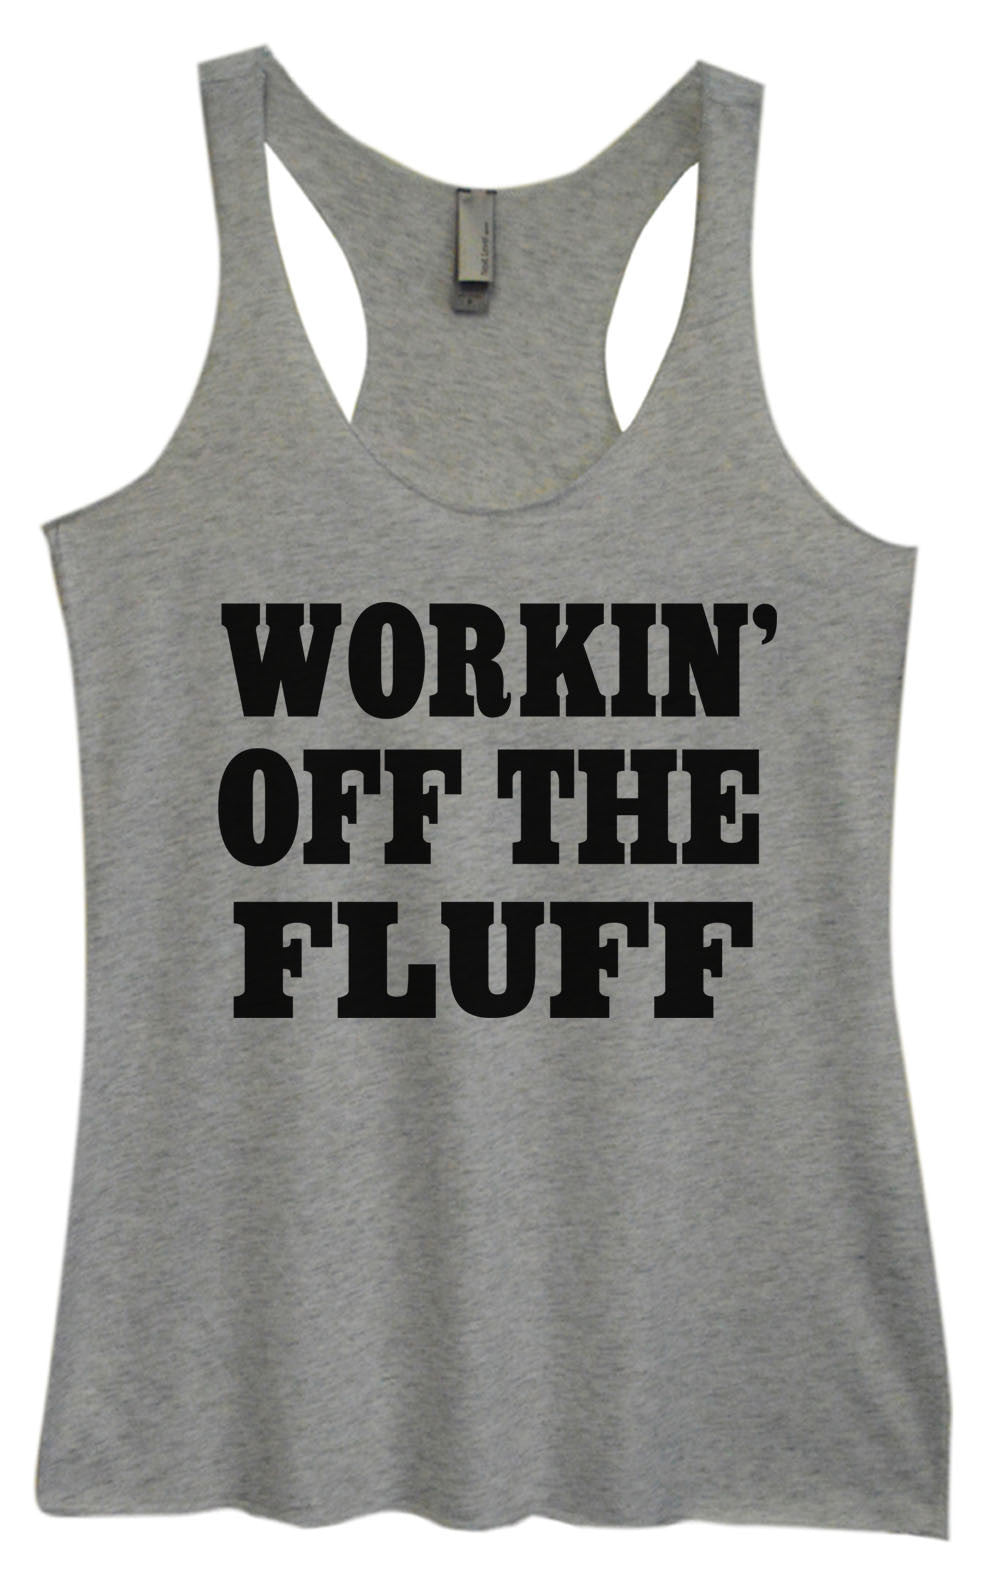 Womens Fashion Triblend Tank Top - Workin' Off The Fluff - Tri-688 - Funny Shirts Tank Tops Burnouts and Triblends  - 2